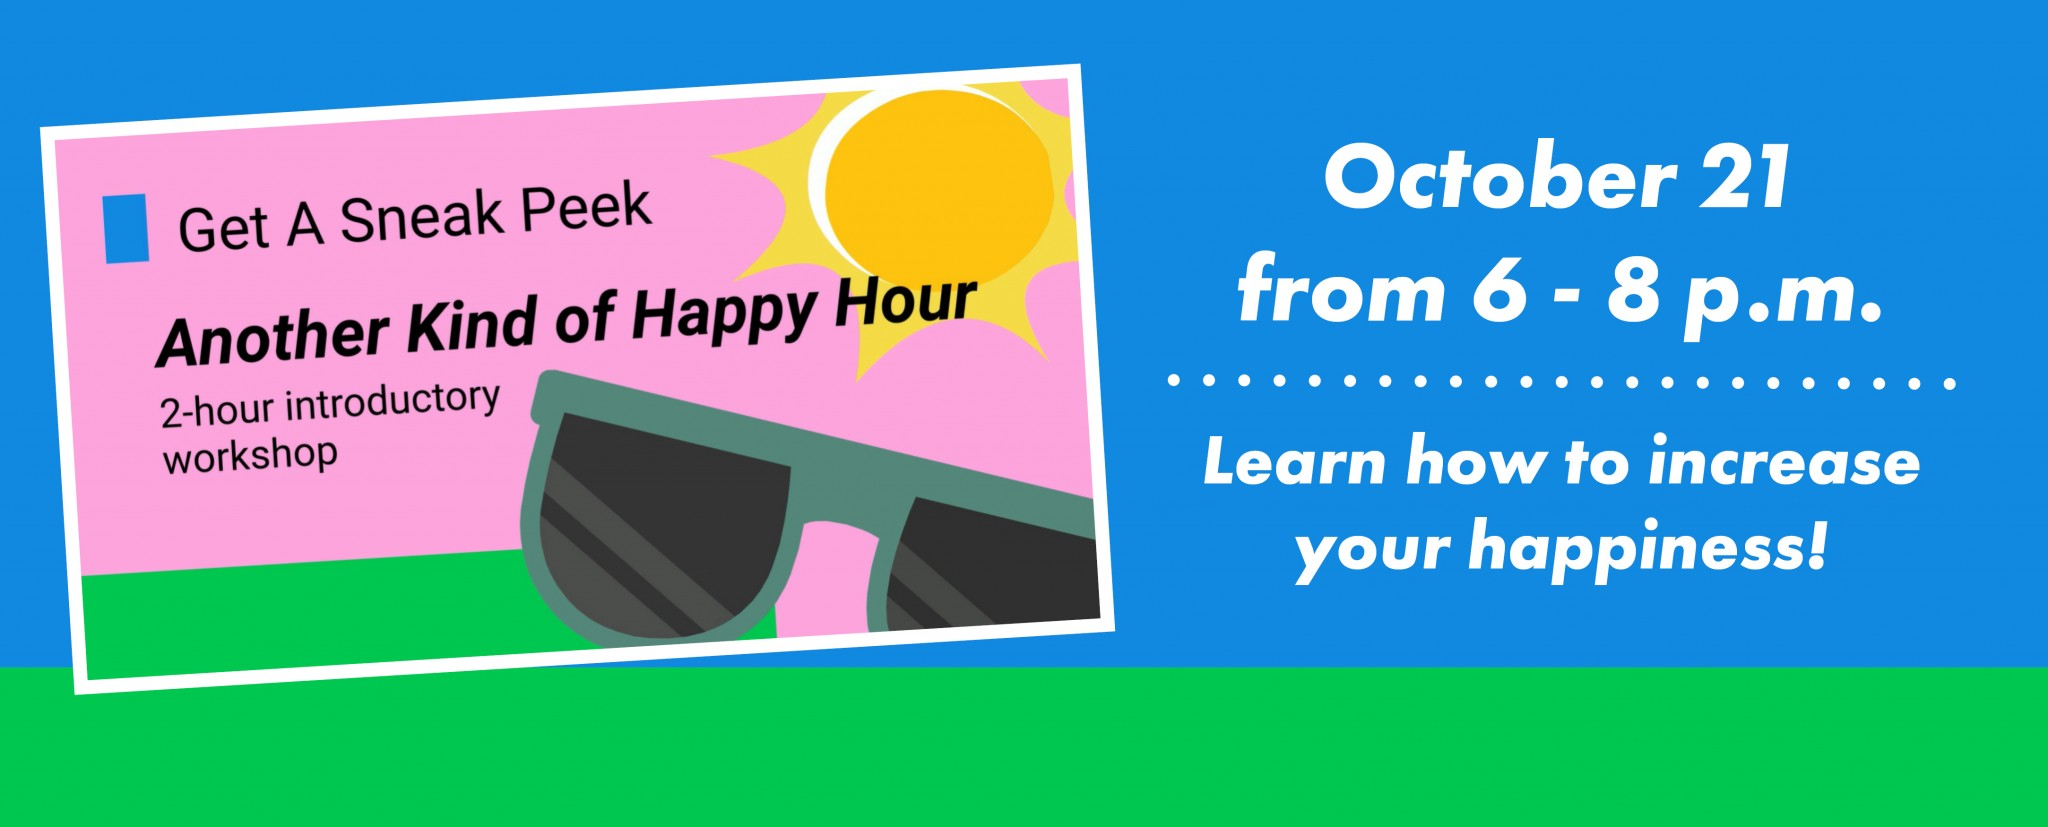 Another Kind of Happy Hour Banner